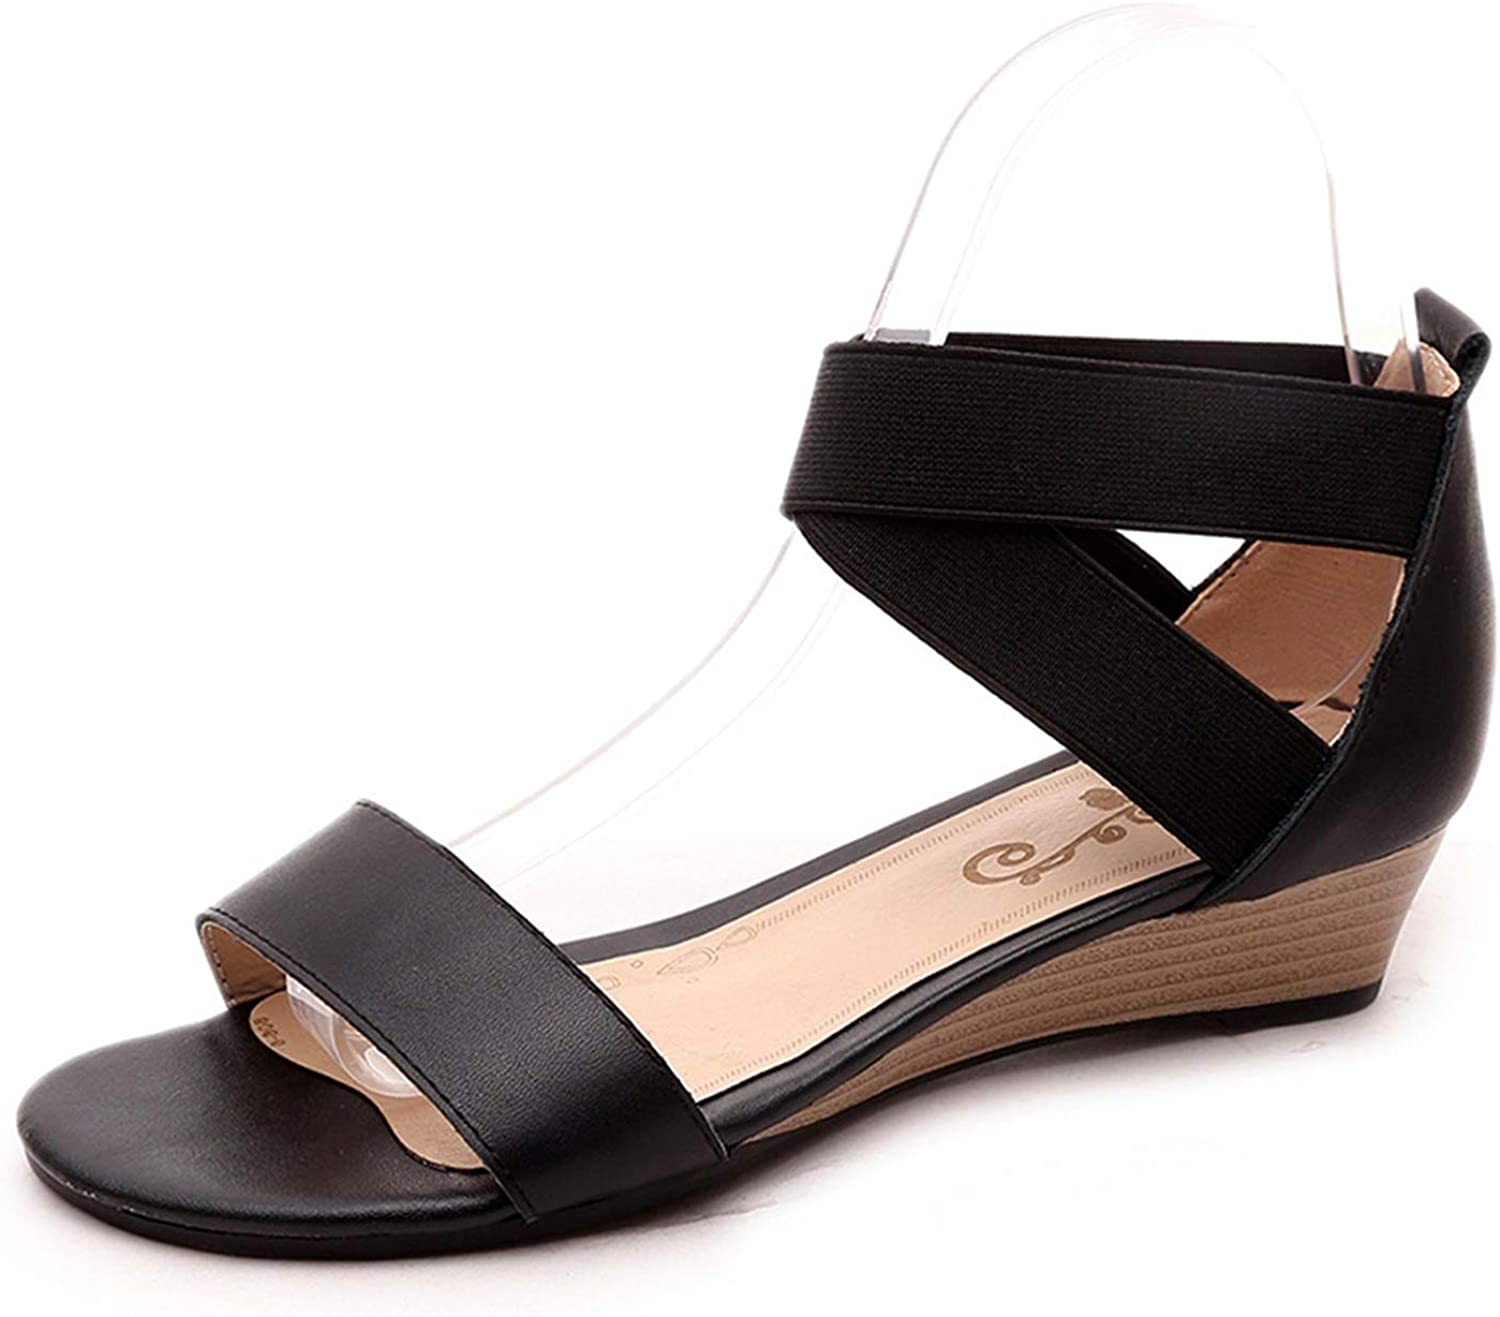 Lazy&Sexy-Heels Genuine Leather Women Sandals Wedges Low Heel Summer Casual shoes Black Ladies shoes